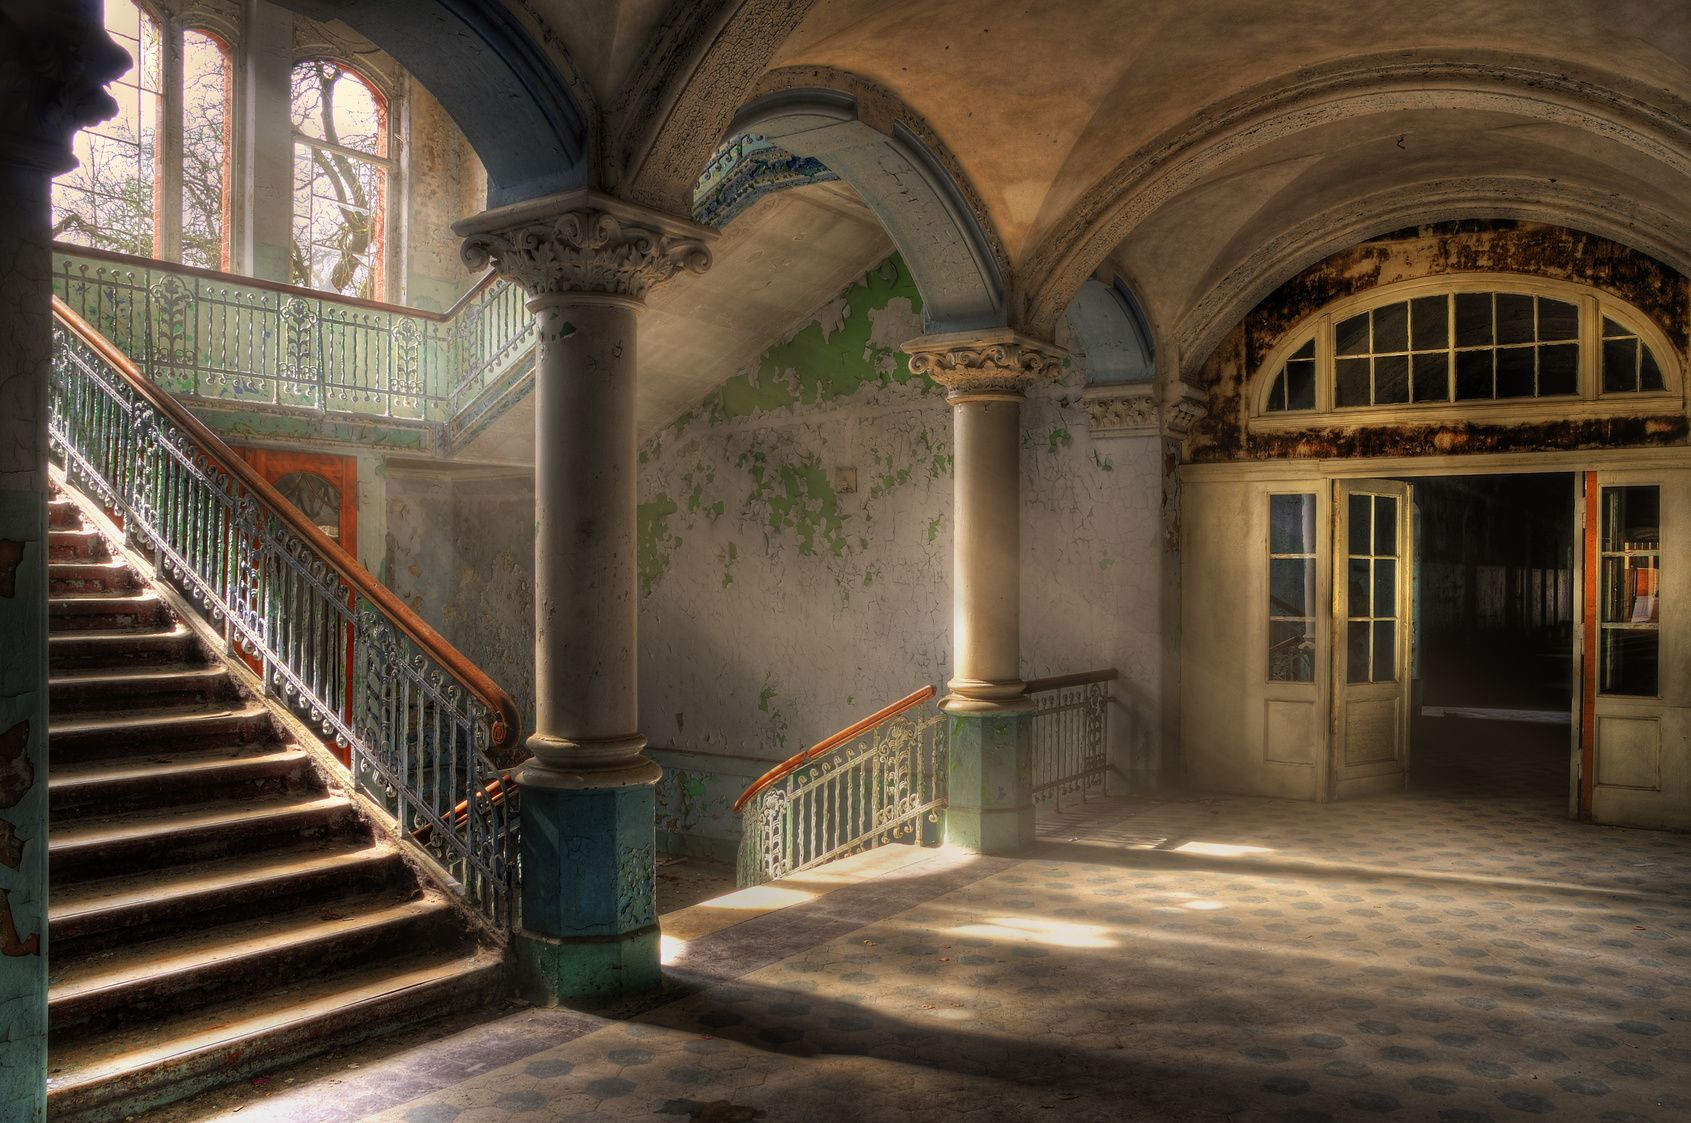 Treppenhaus Beelitz-Heilstätten - Lost Places in Berlin